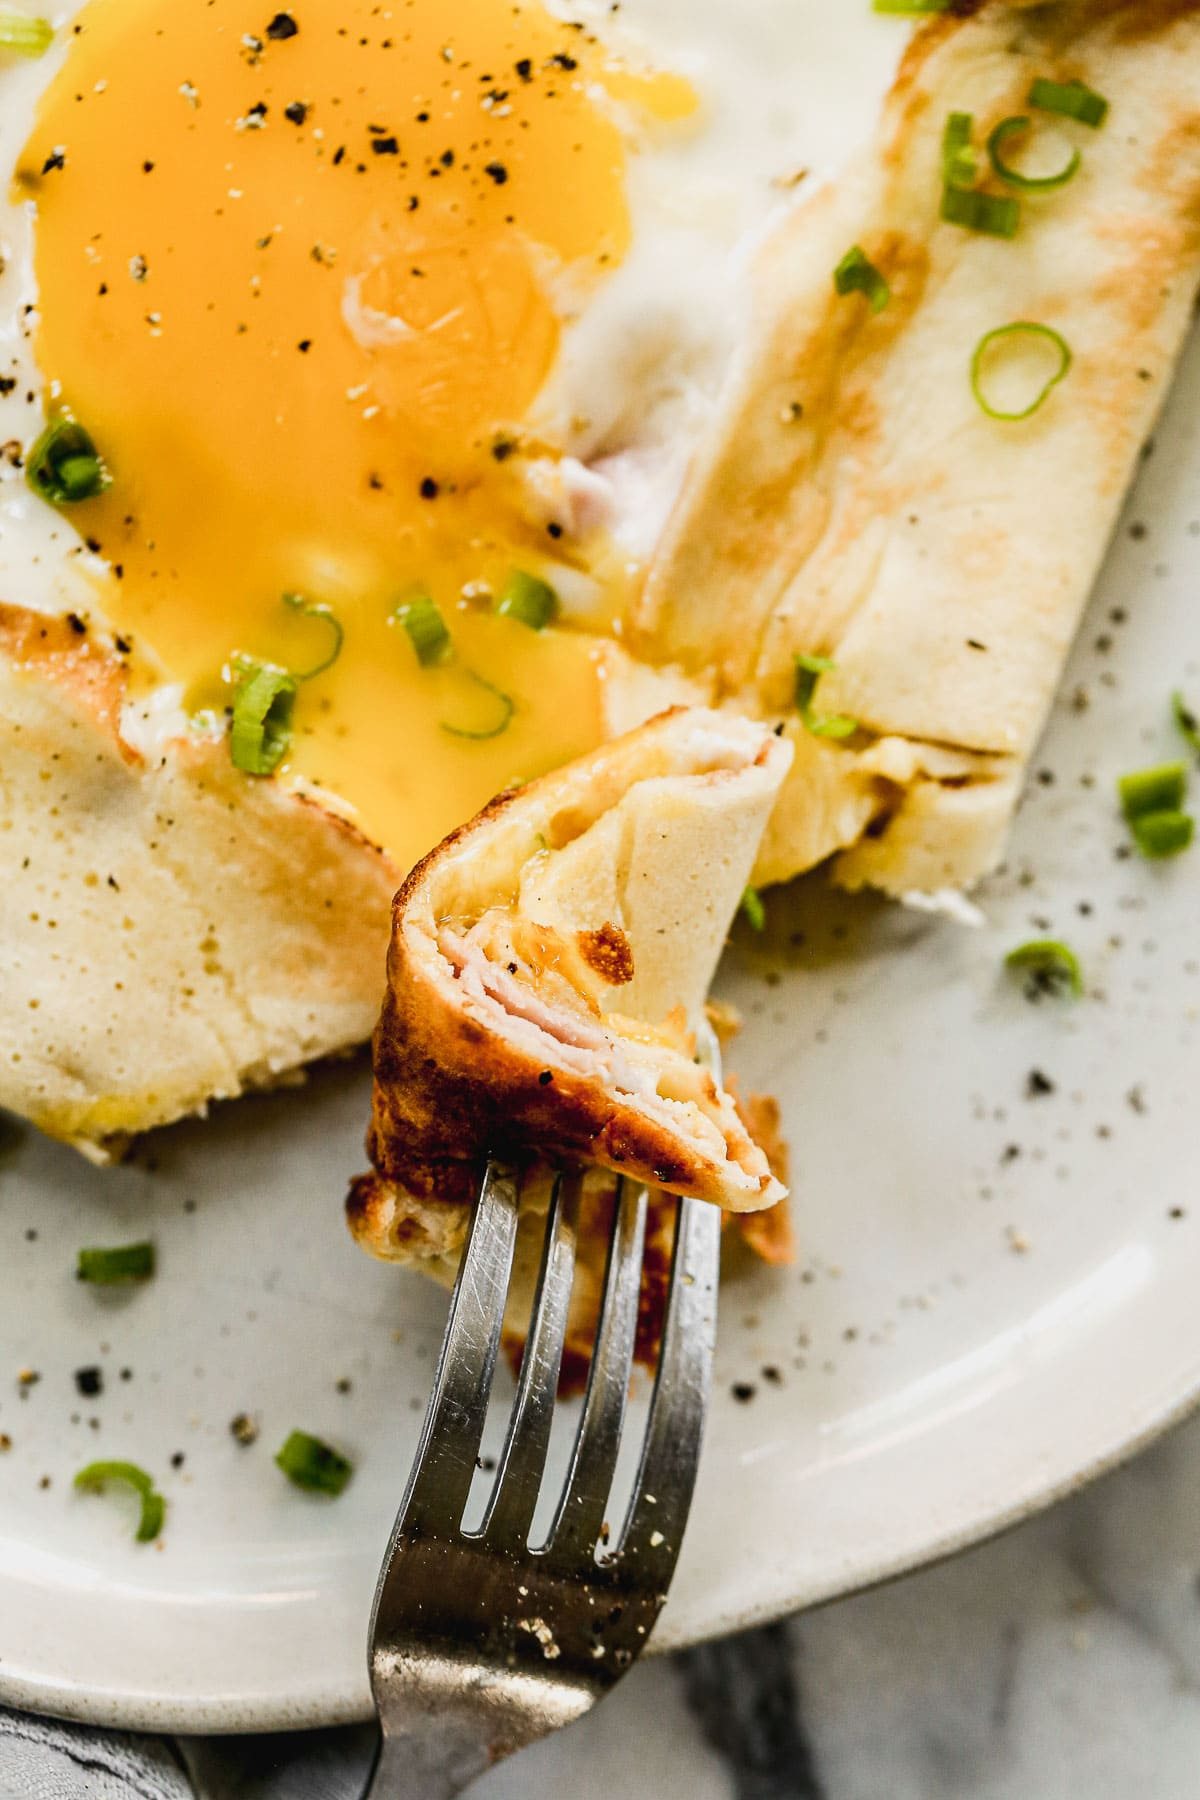 A bite of savory crepes on a fork